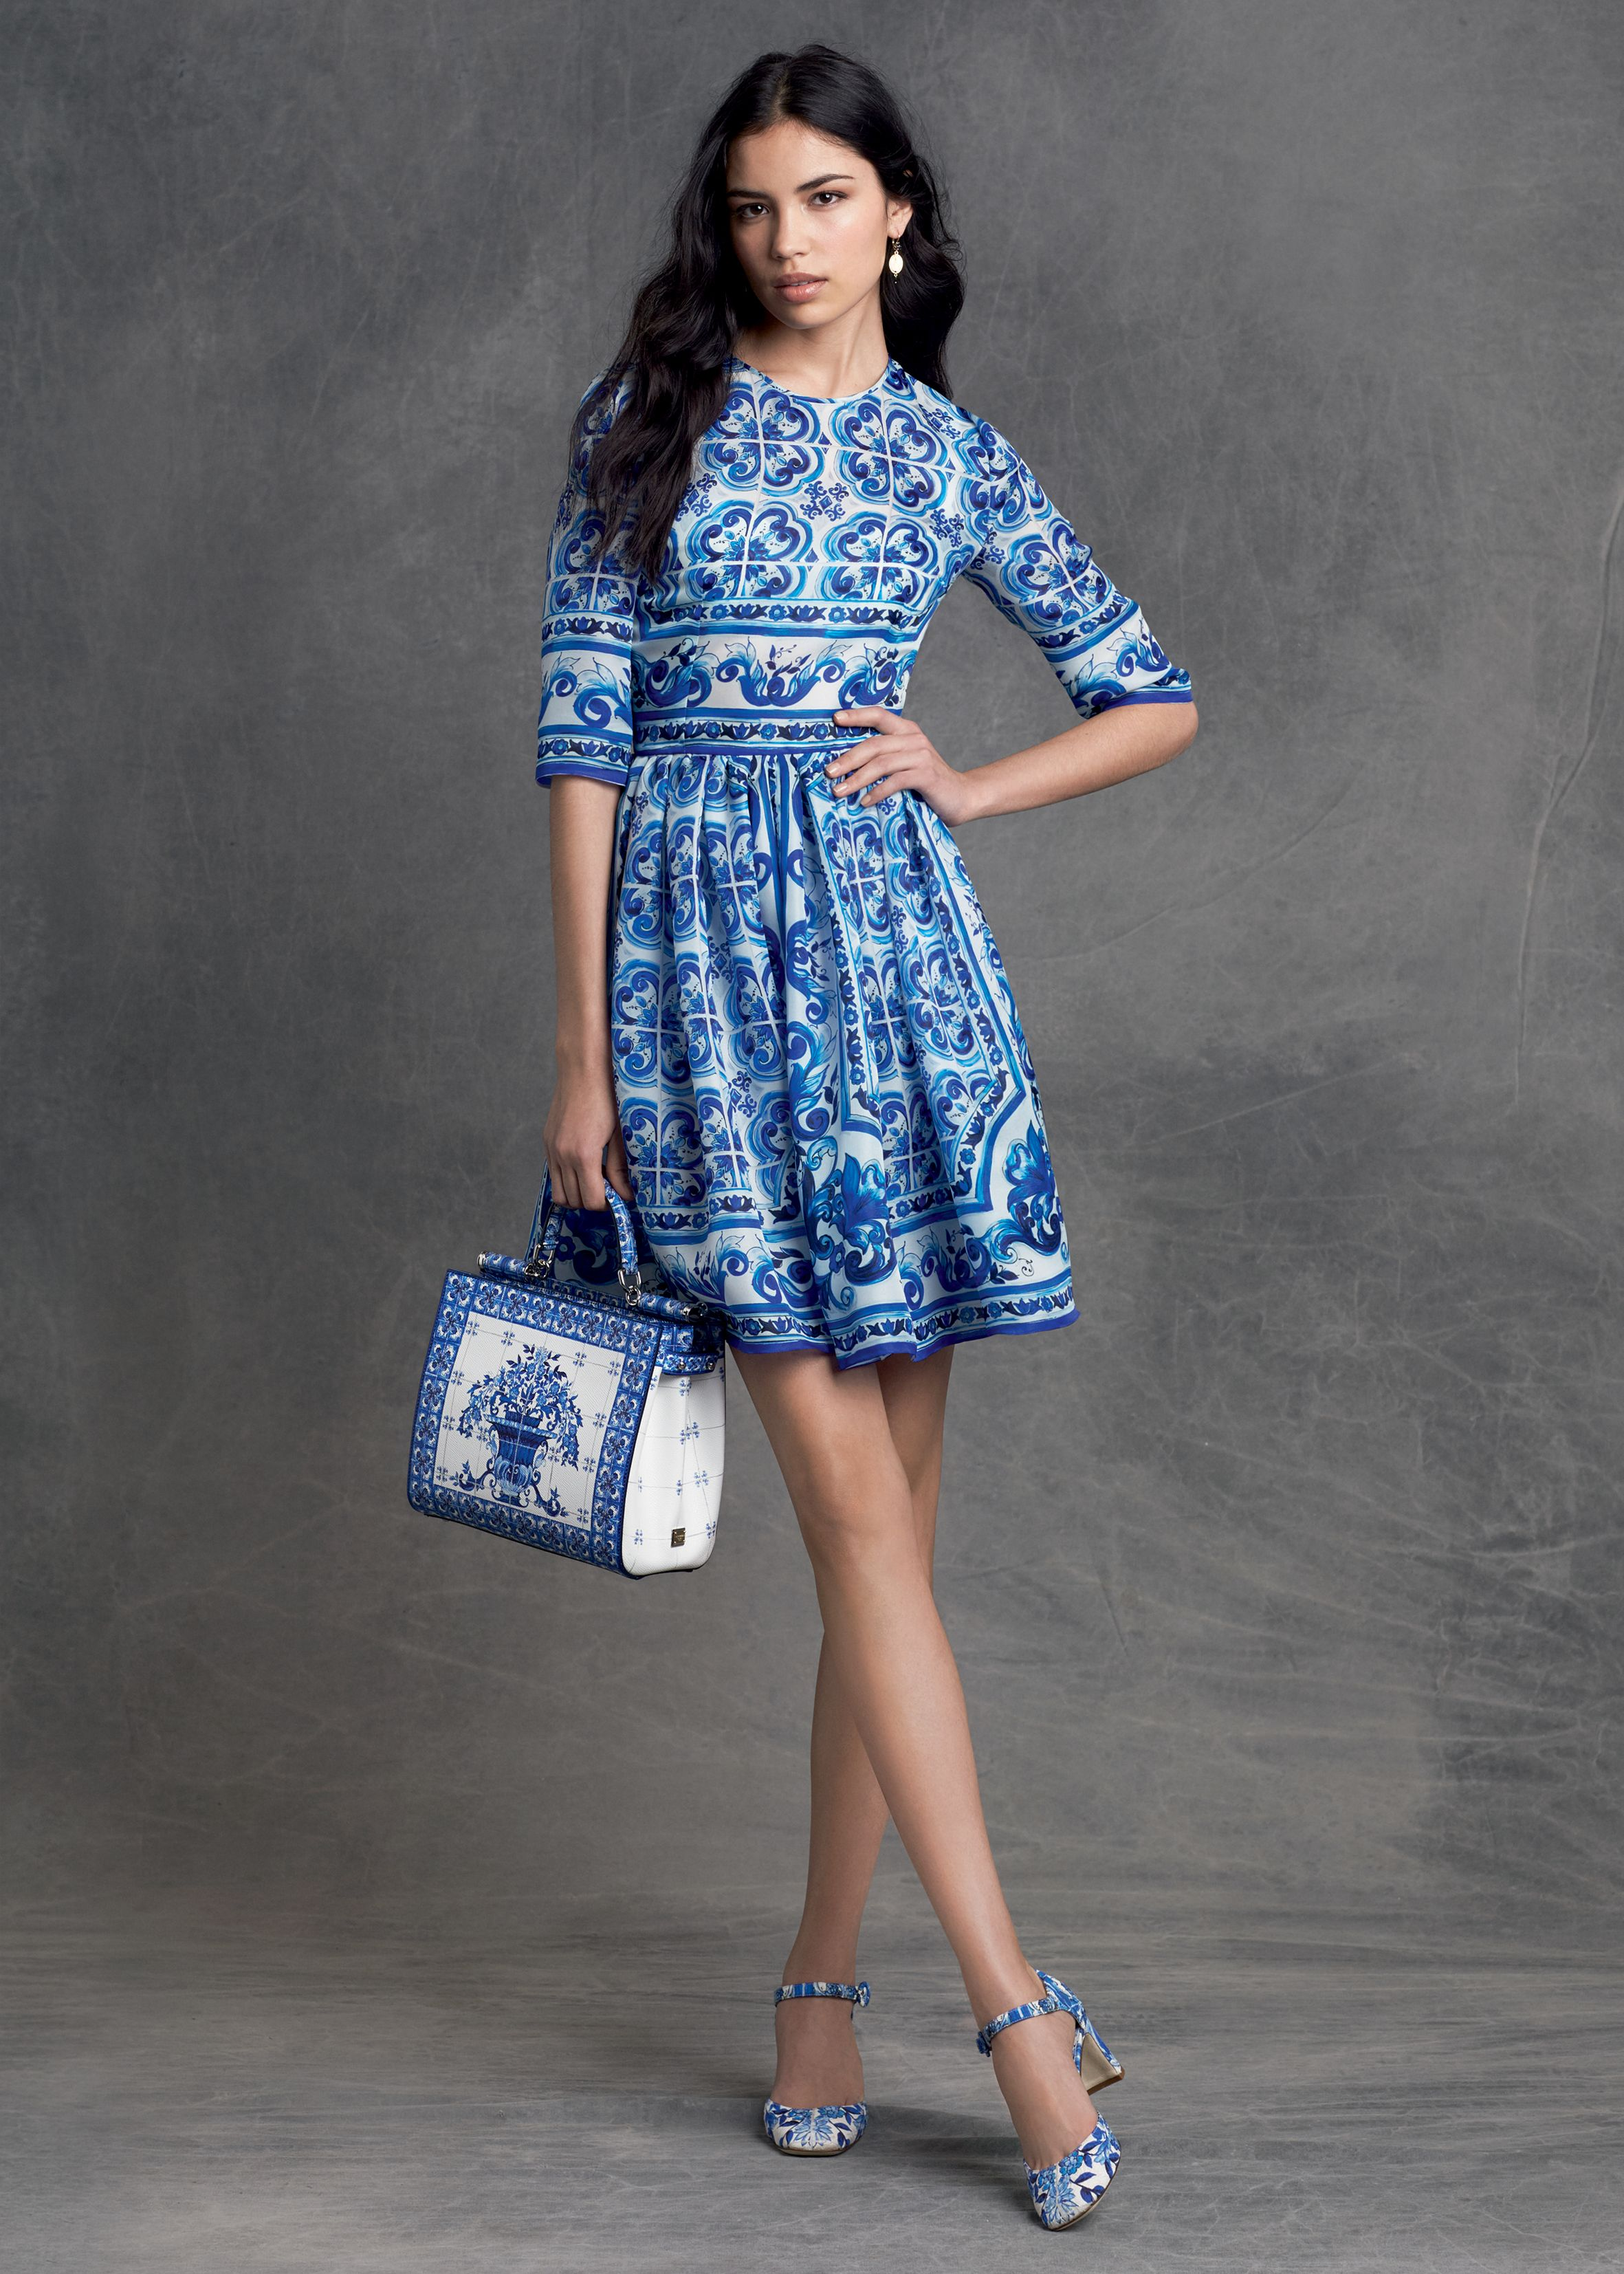 Lord and taylor cocktail dresses jerk